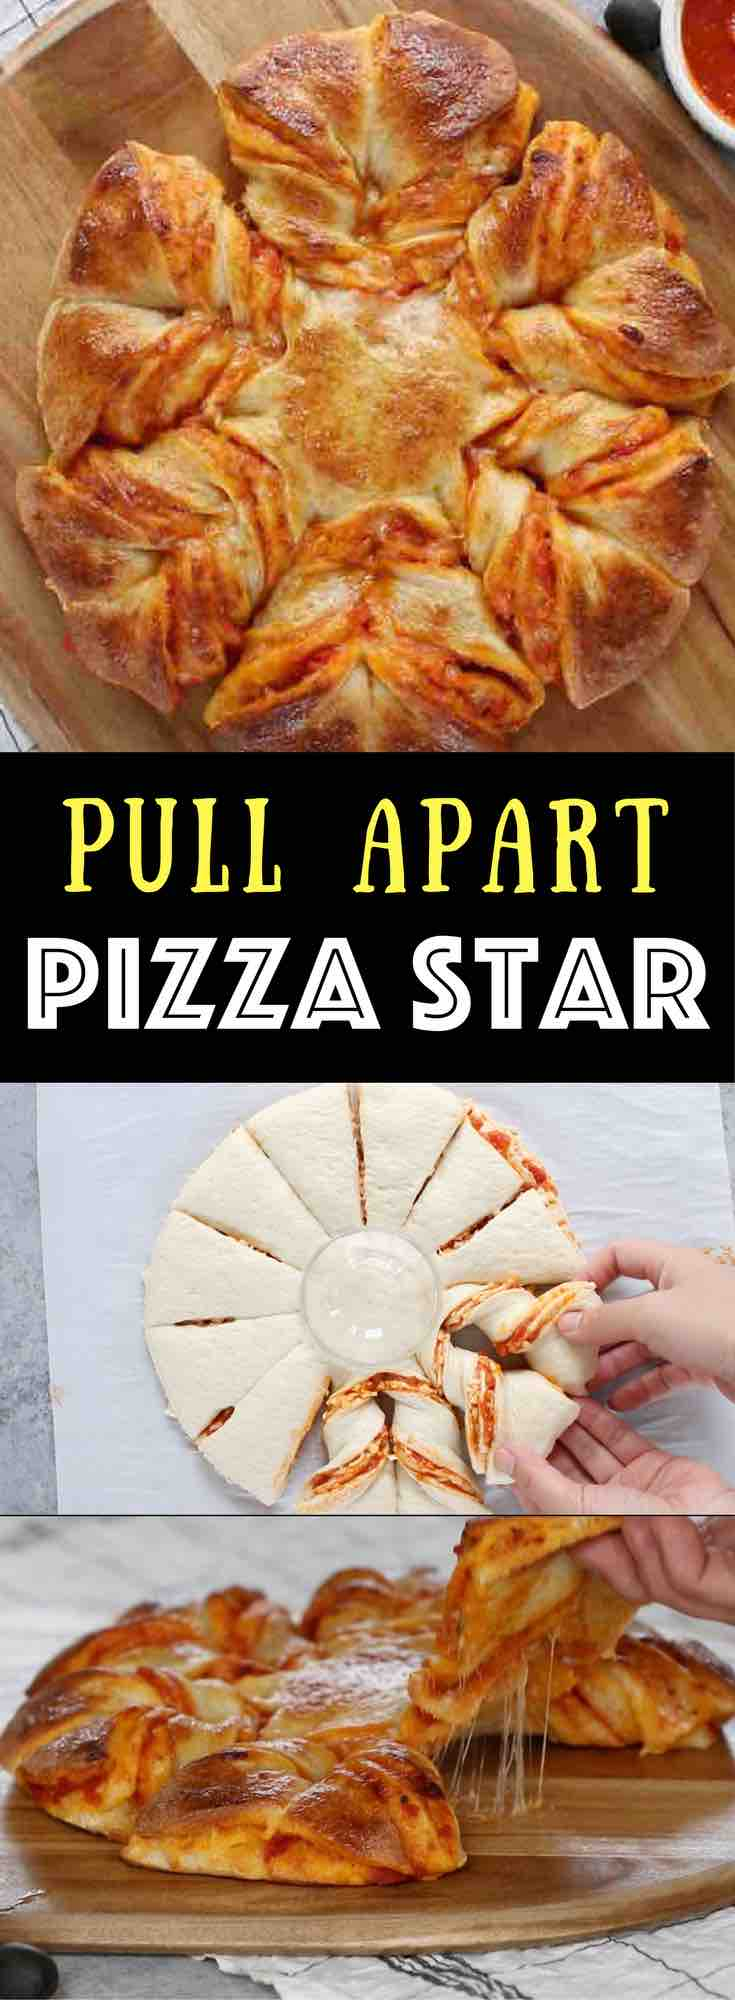 Pull Apart Pizza Star - warm, cheesy and pull apart Pizza! The easiest and fun pizza recipe that can be prepared in 5 minutes and ready in 20 minutes. All you need is only 5 ingredients: refrigerated pizza dough, marinara sauce, shredded mozzarella, egg and water. The perfect snack, lunch or quick dinner. Fun for game day too, and you will wow your guests! Quick and easy recipe. Party food, easy dinner. Video recipe.   Tipbuzz.com